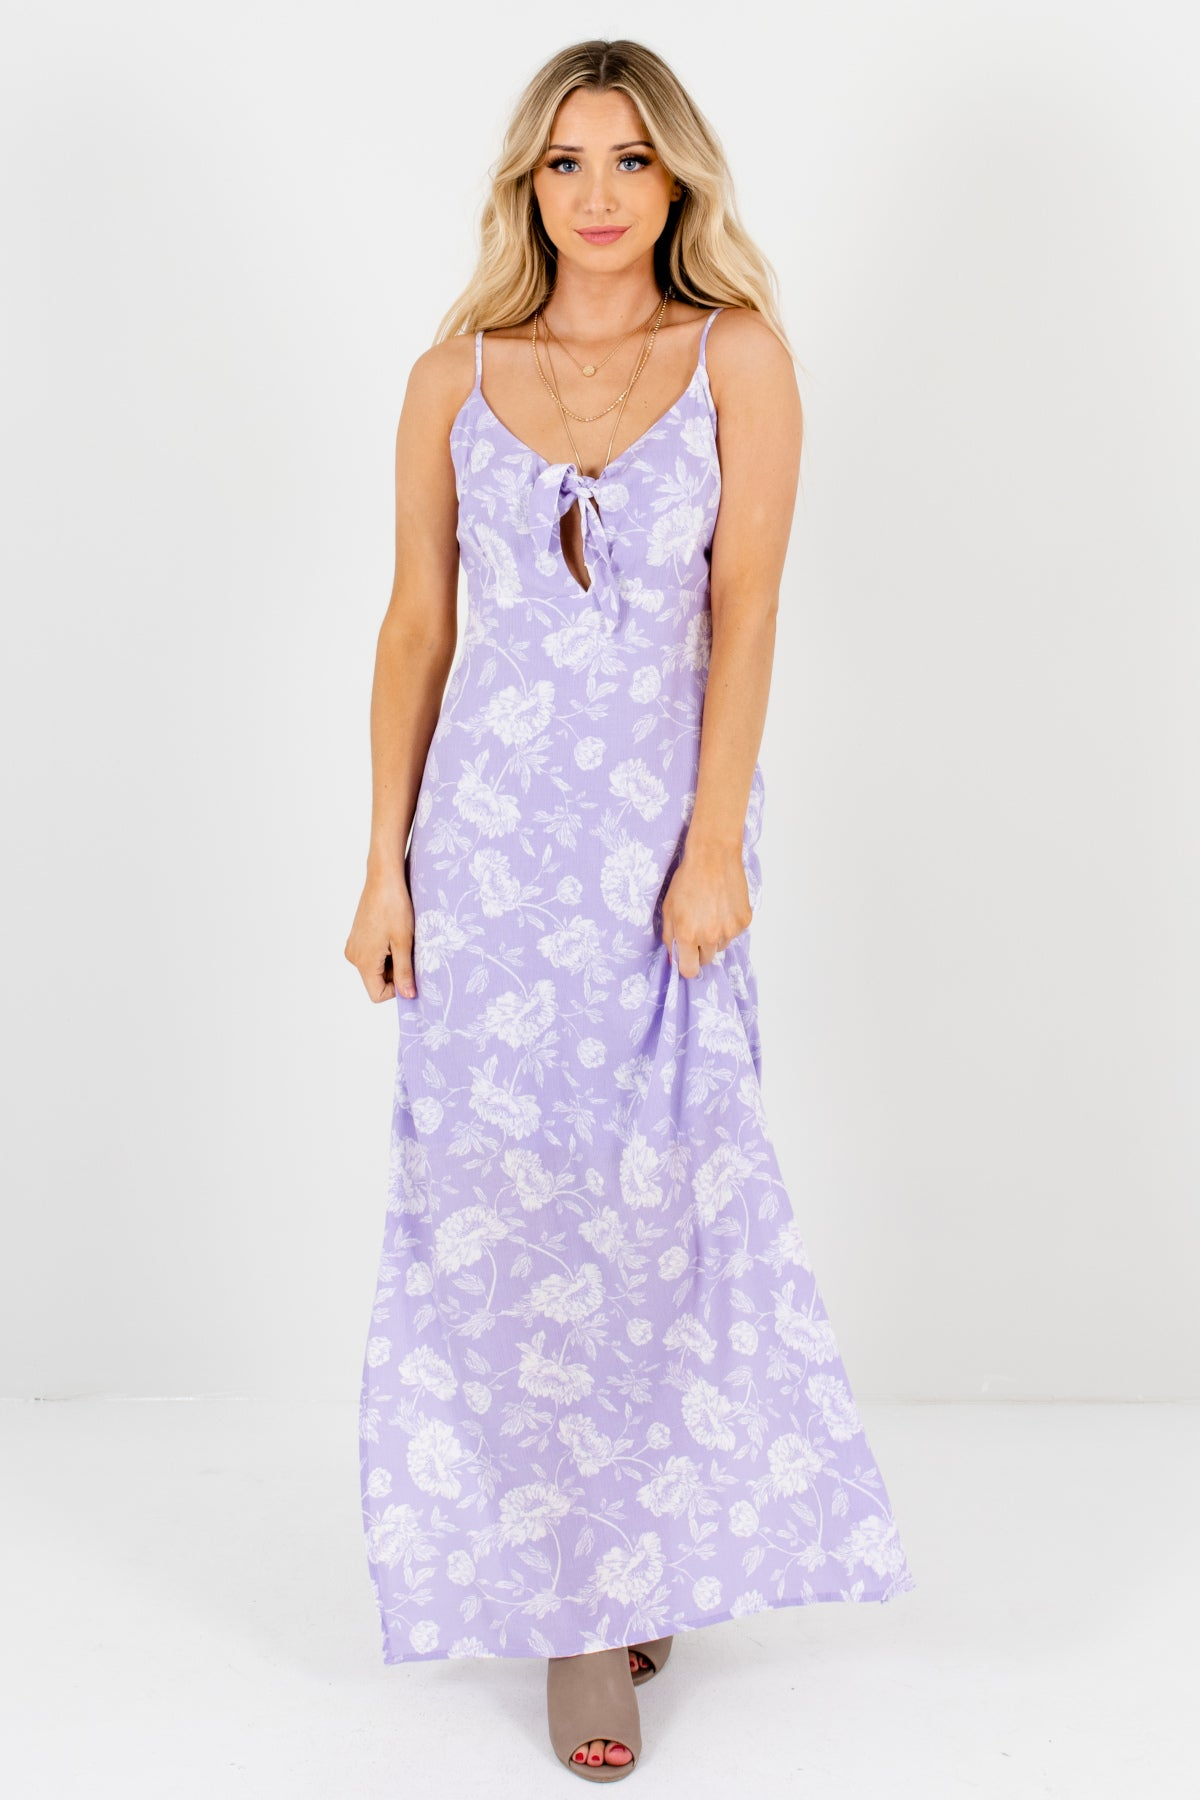 Lilac Purple White Floral Print Tie-Front Sundresses and Maxi Dresses